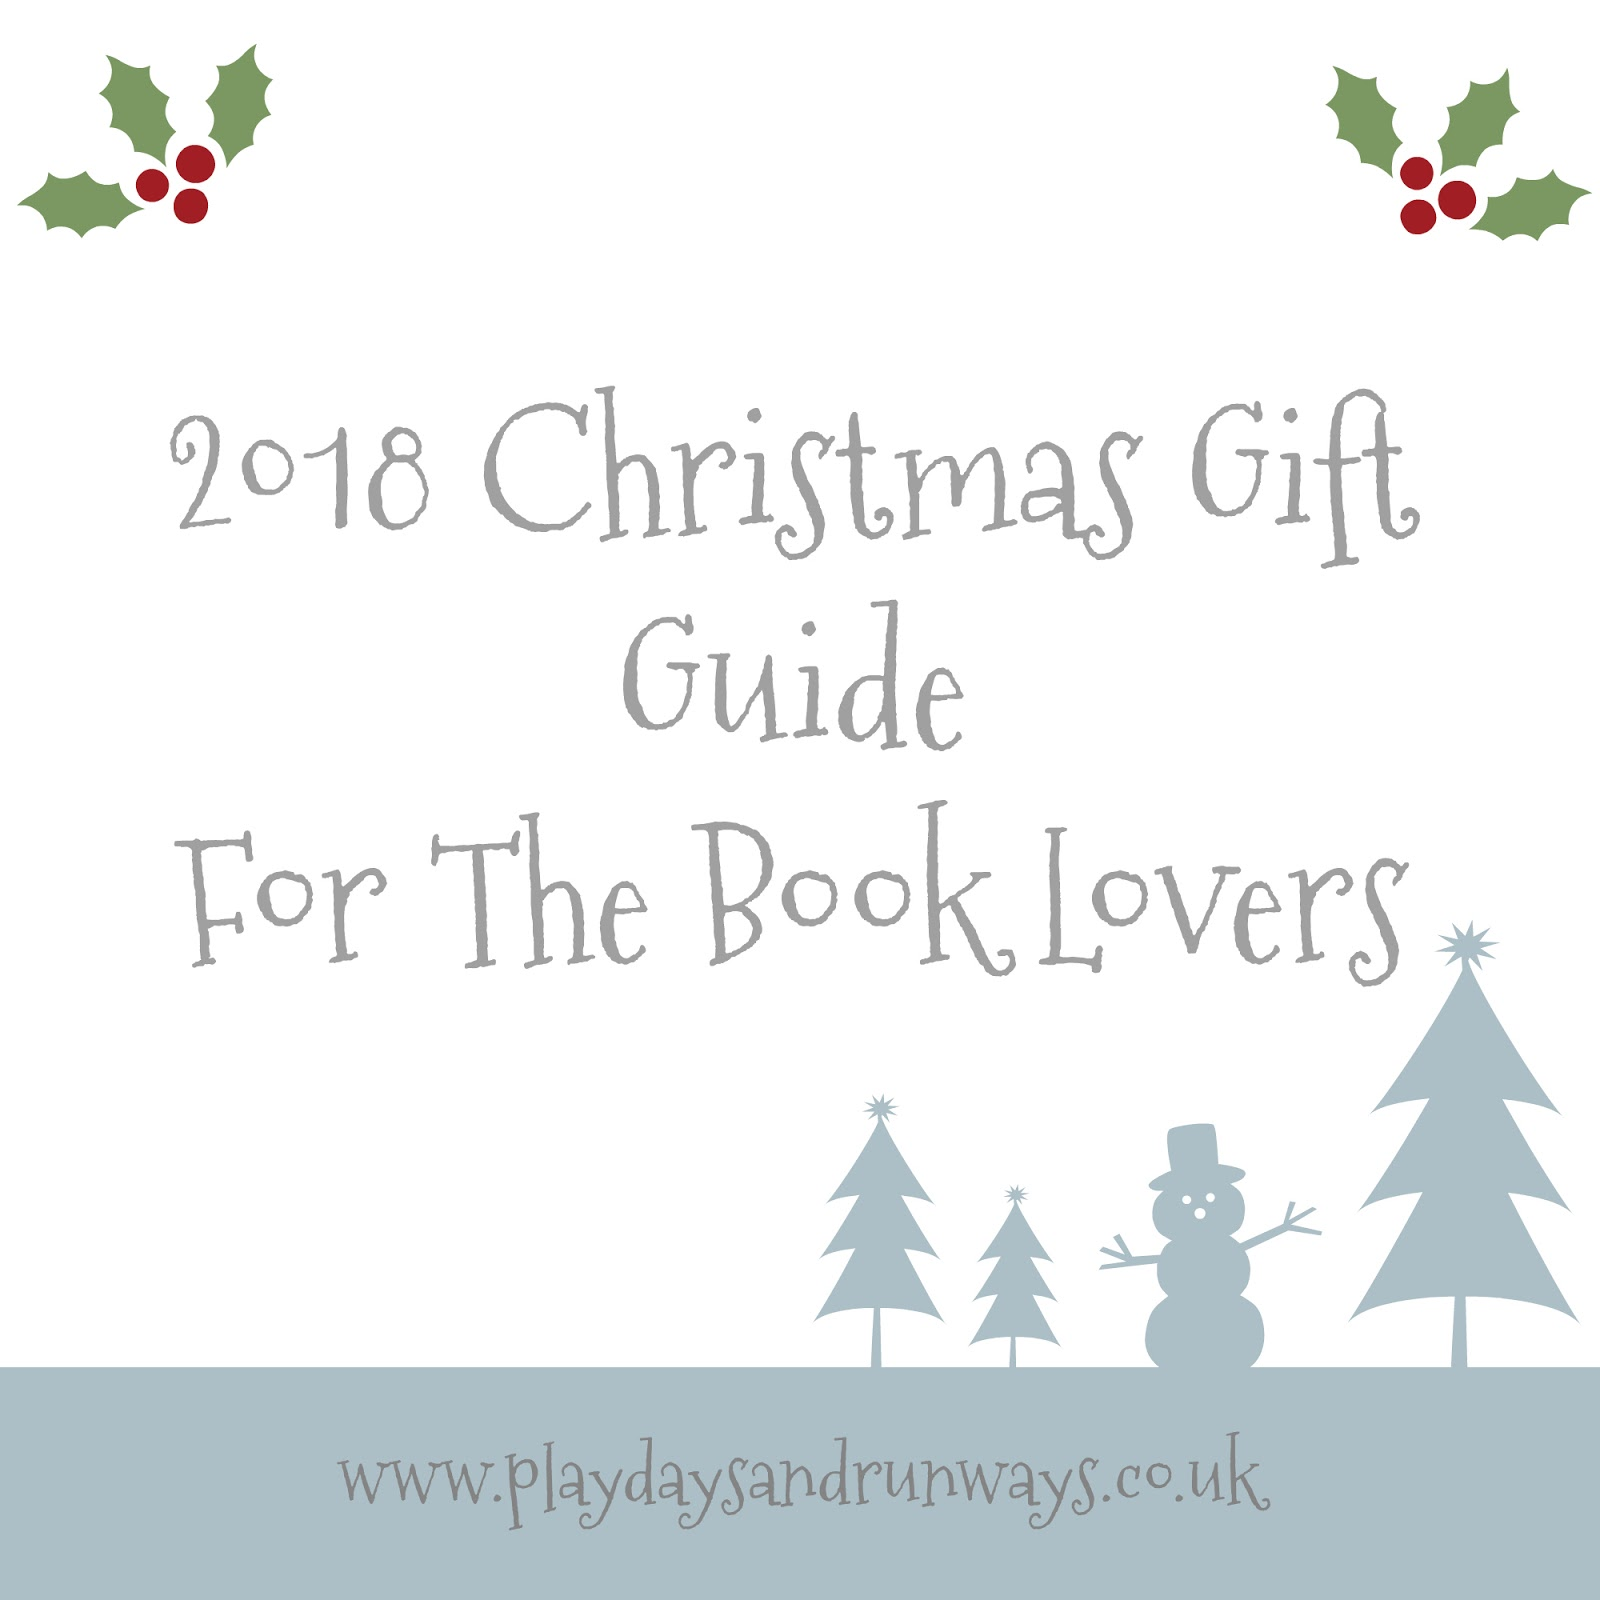 2018 Christmas Gift Guide For The Book Lovers   Playdays and Runways